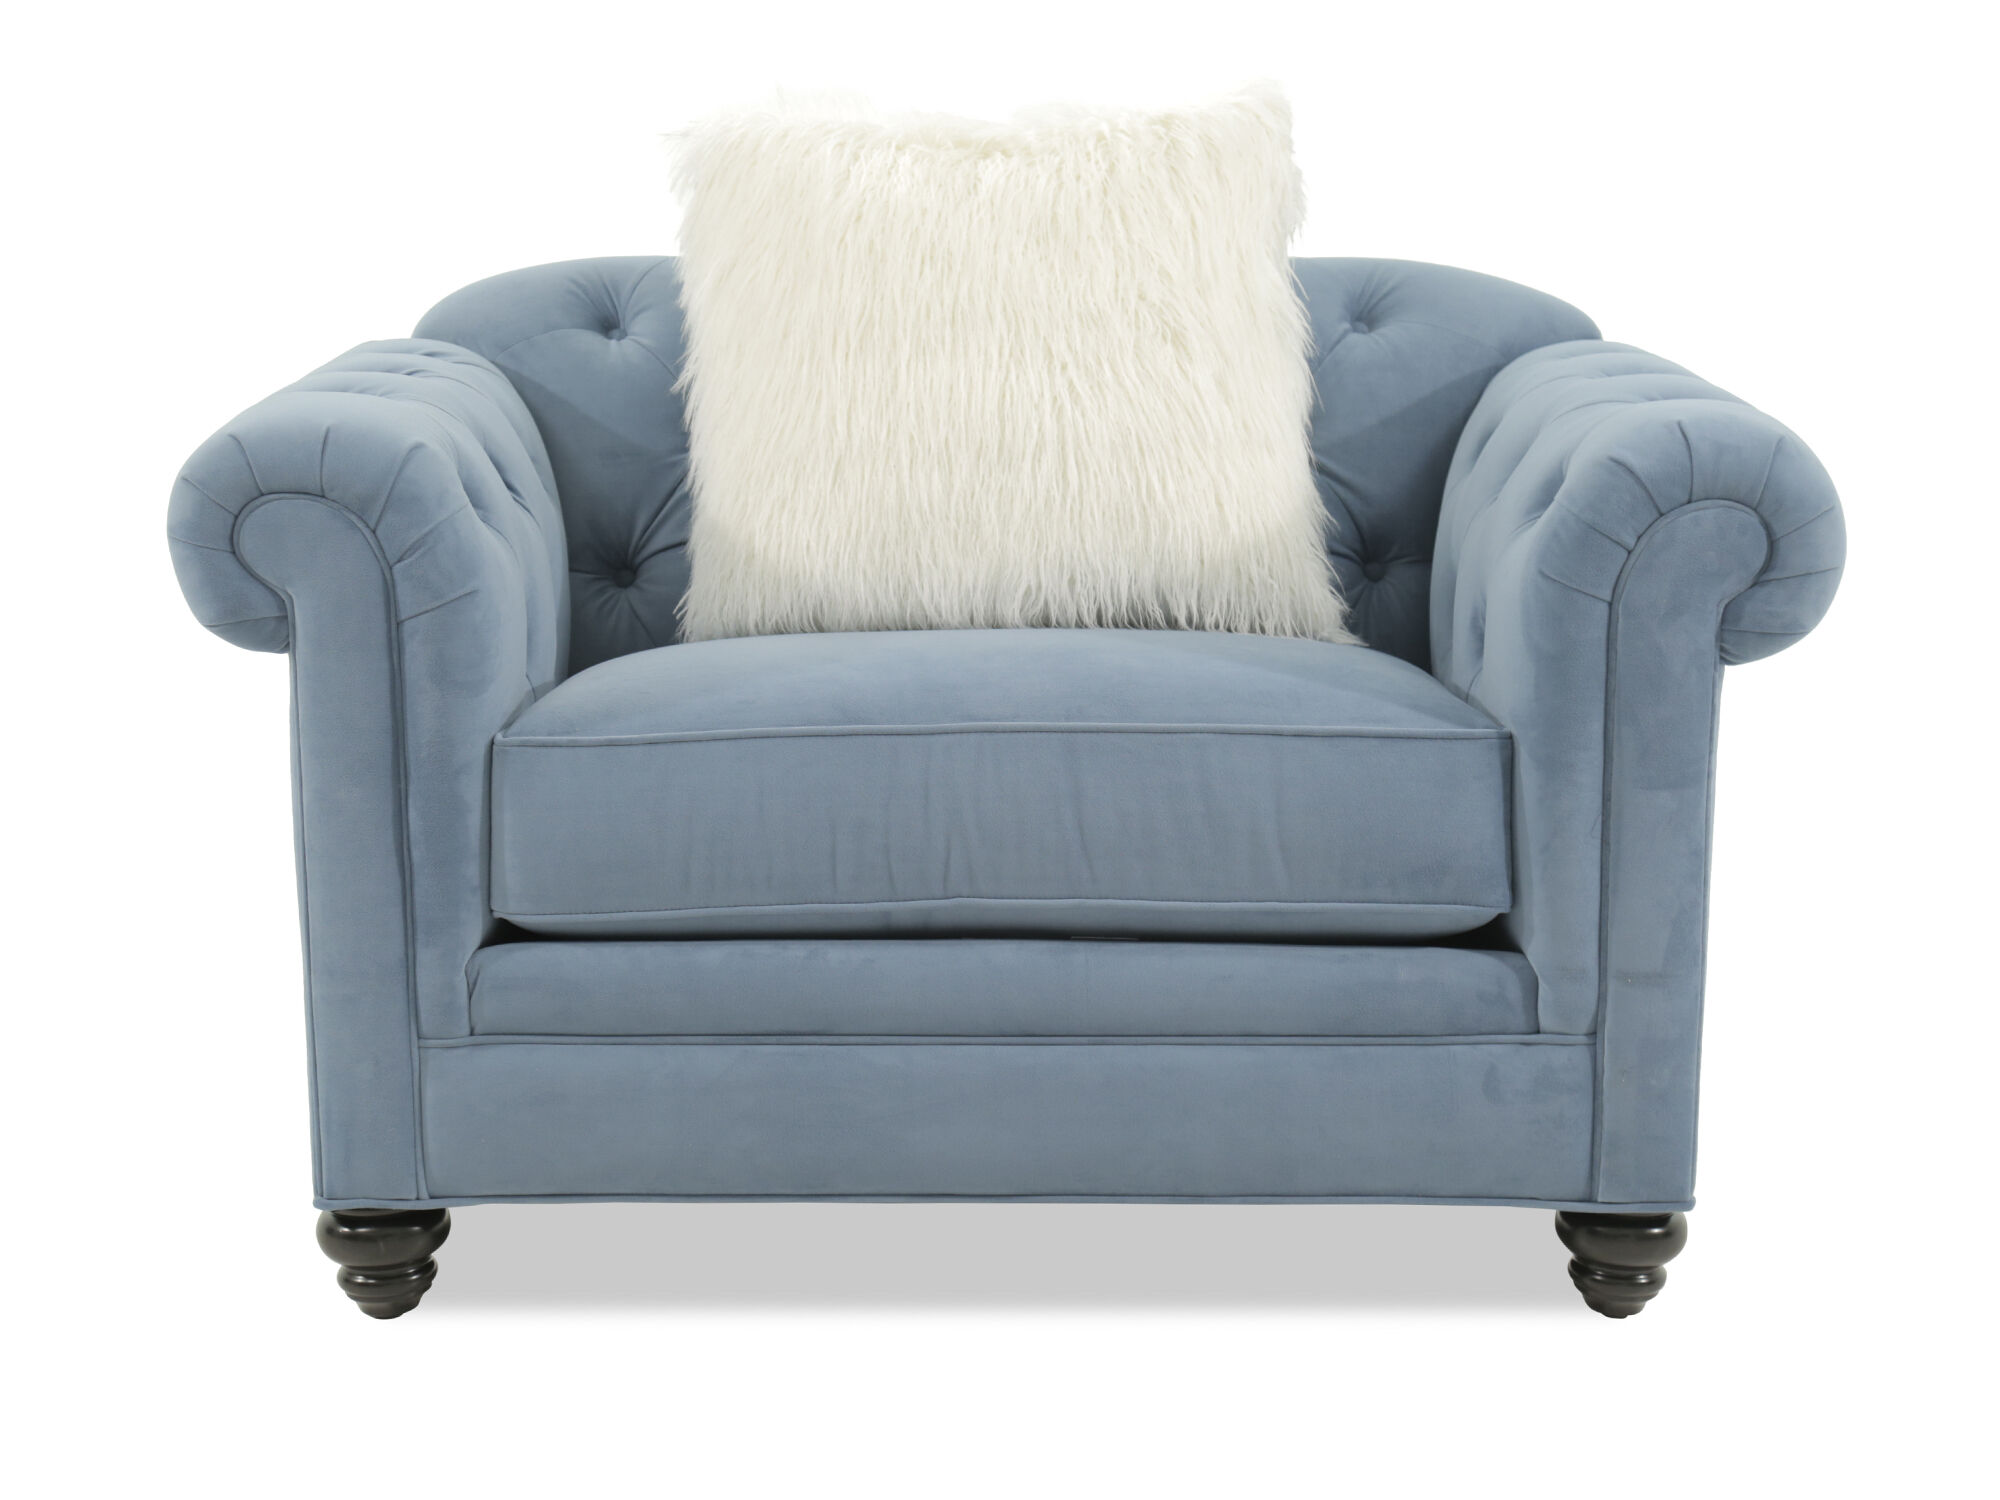 tufted blue chair maribel baby electric rocking swing cradle sw 102 button microfiber arm in mathis